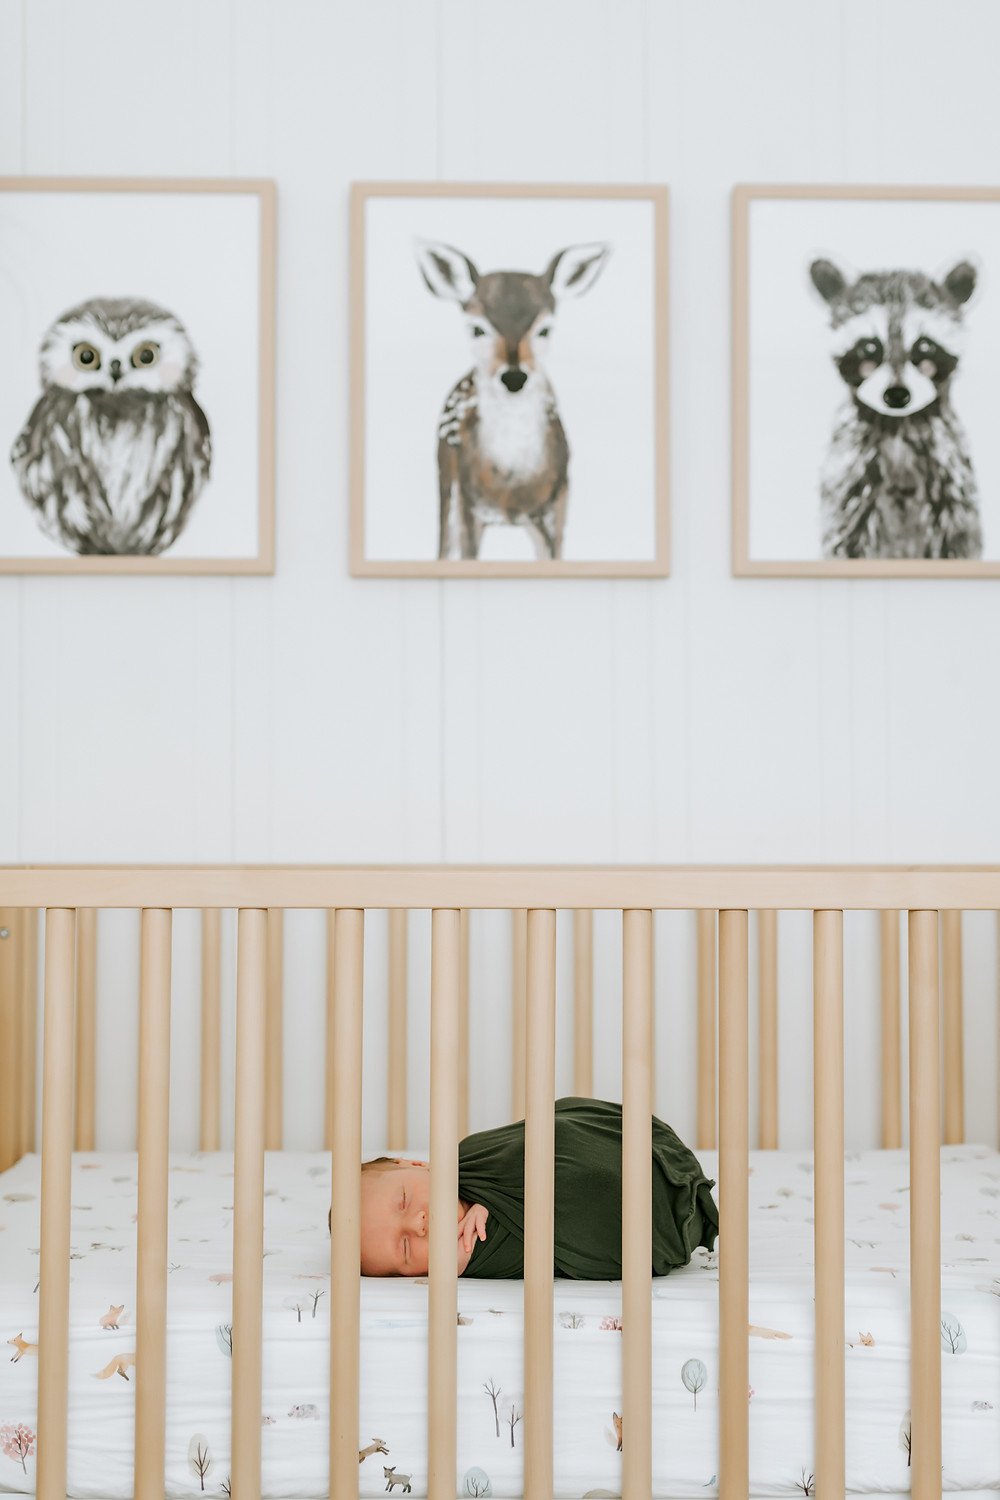 newborn boy sleeping in his wooden crib with three illustrated drawings of an owl, baby deer and baby raccoon behind him on the wall, newborn photographer for petaluma, diana jex photography